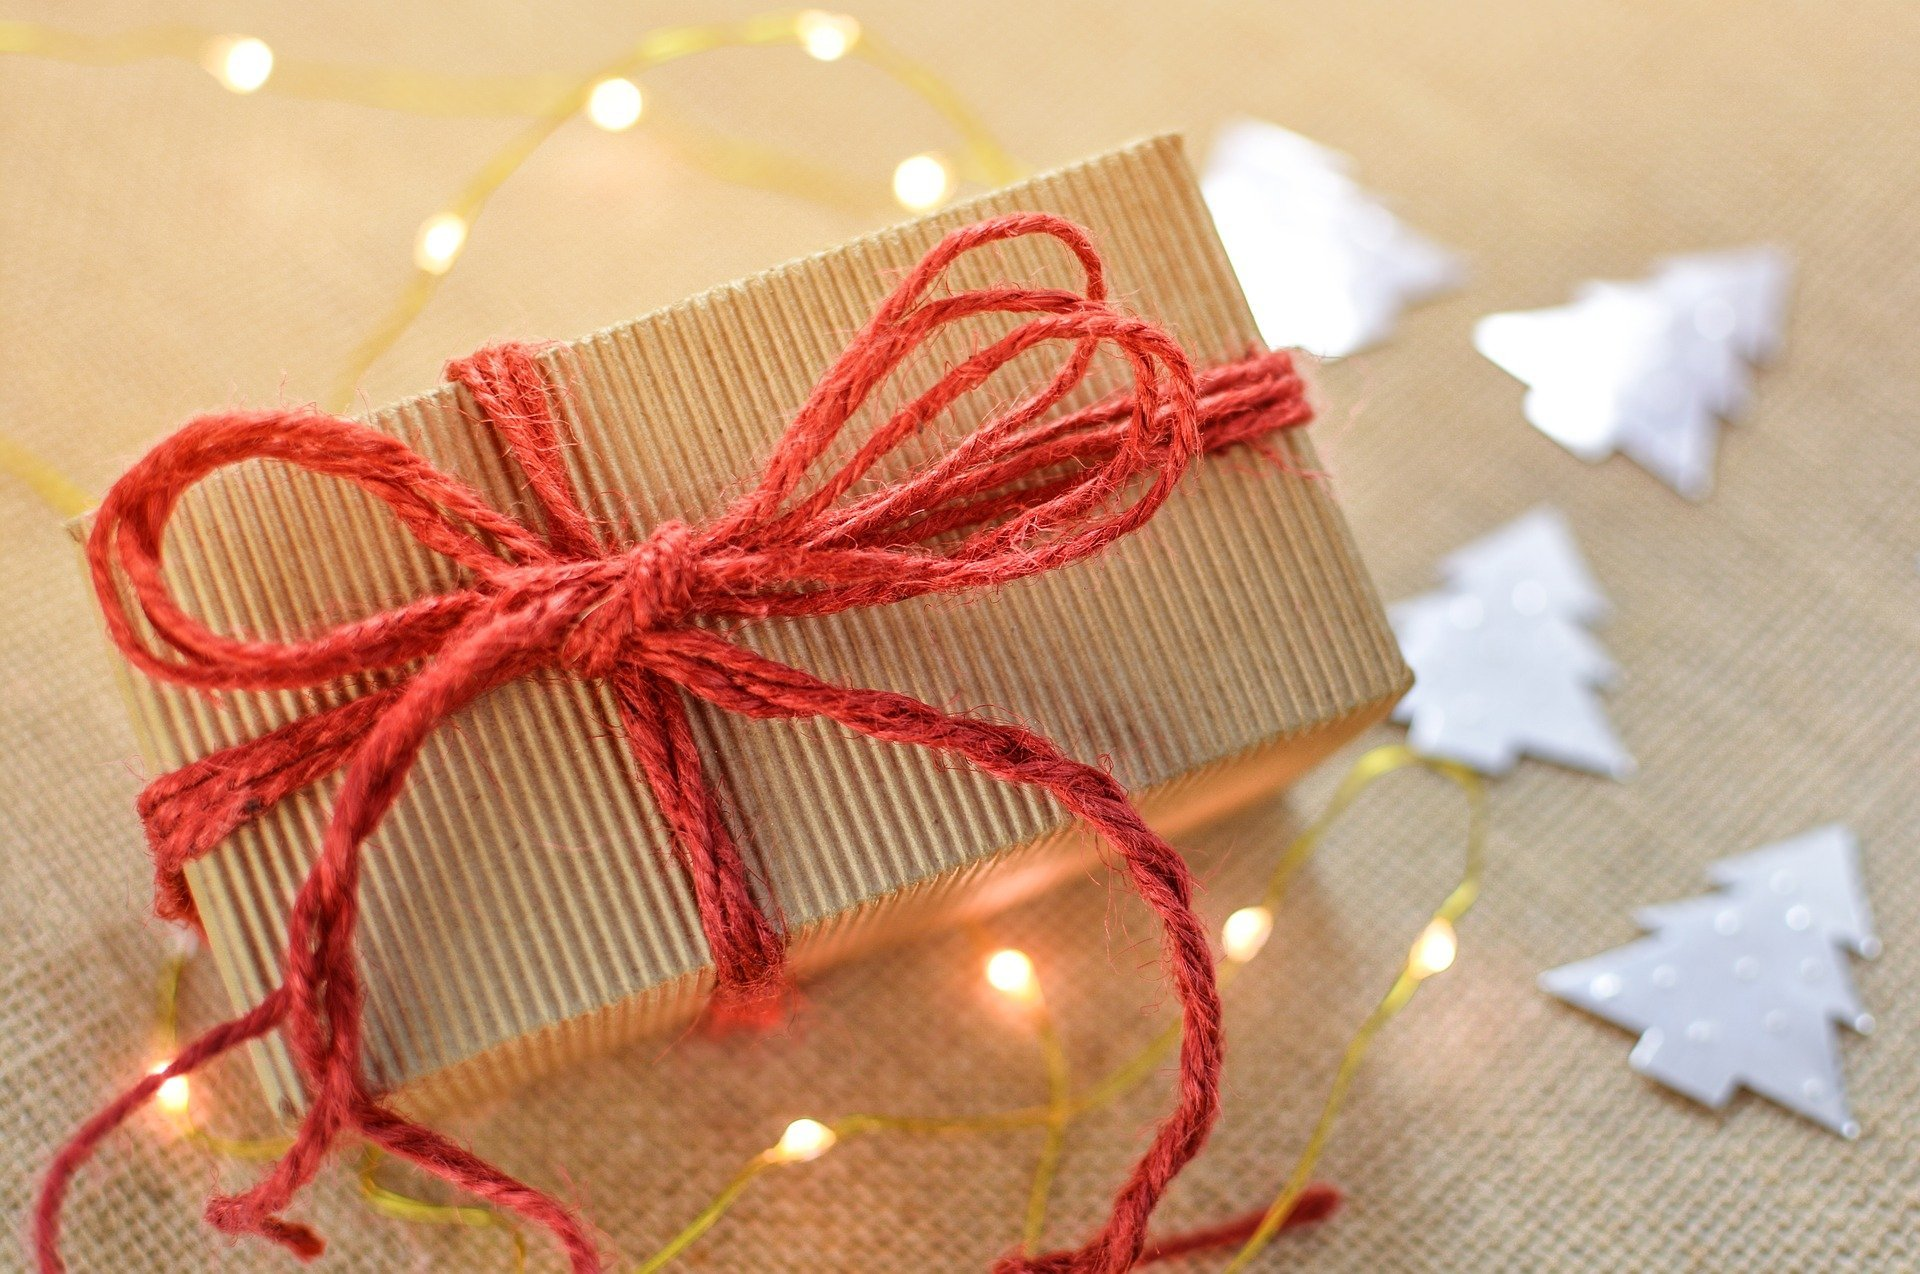 Holiday gift wrapped in red string